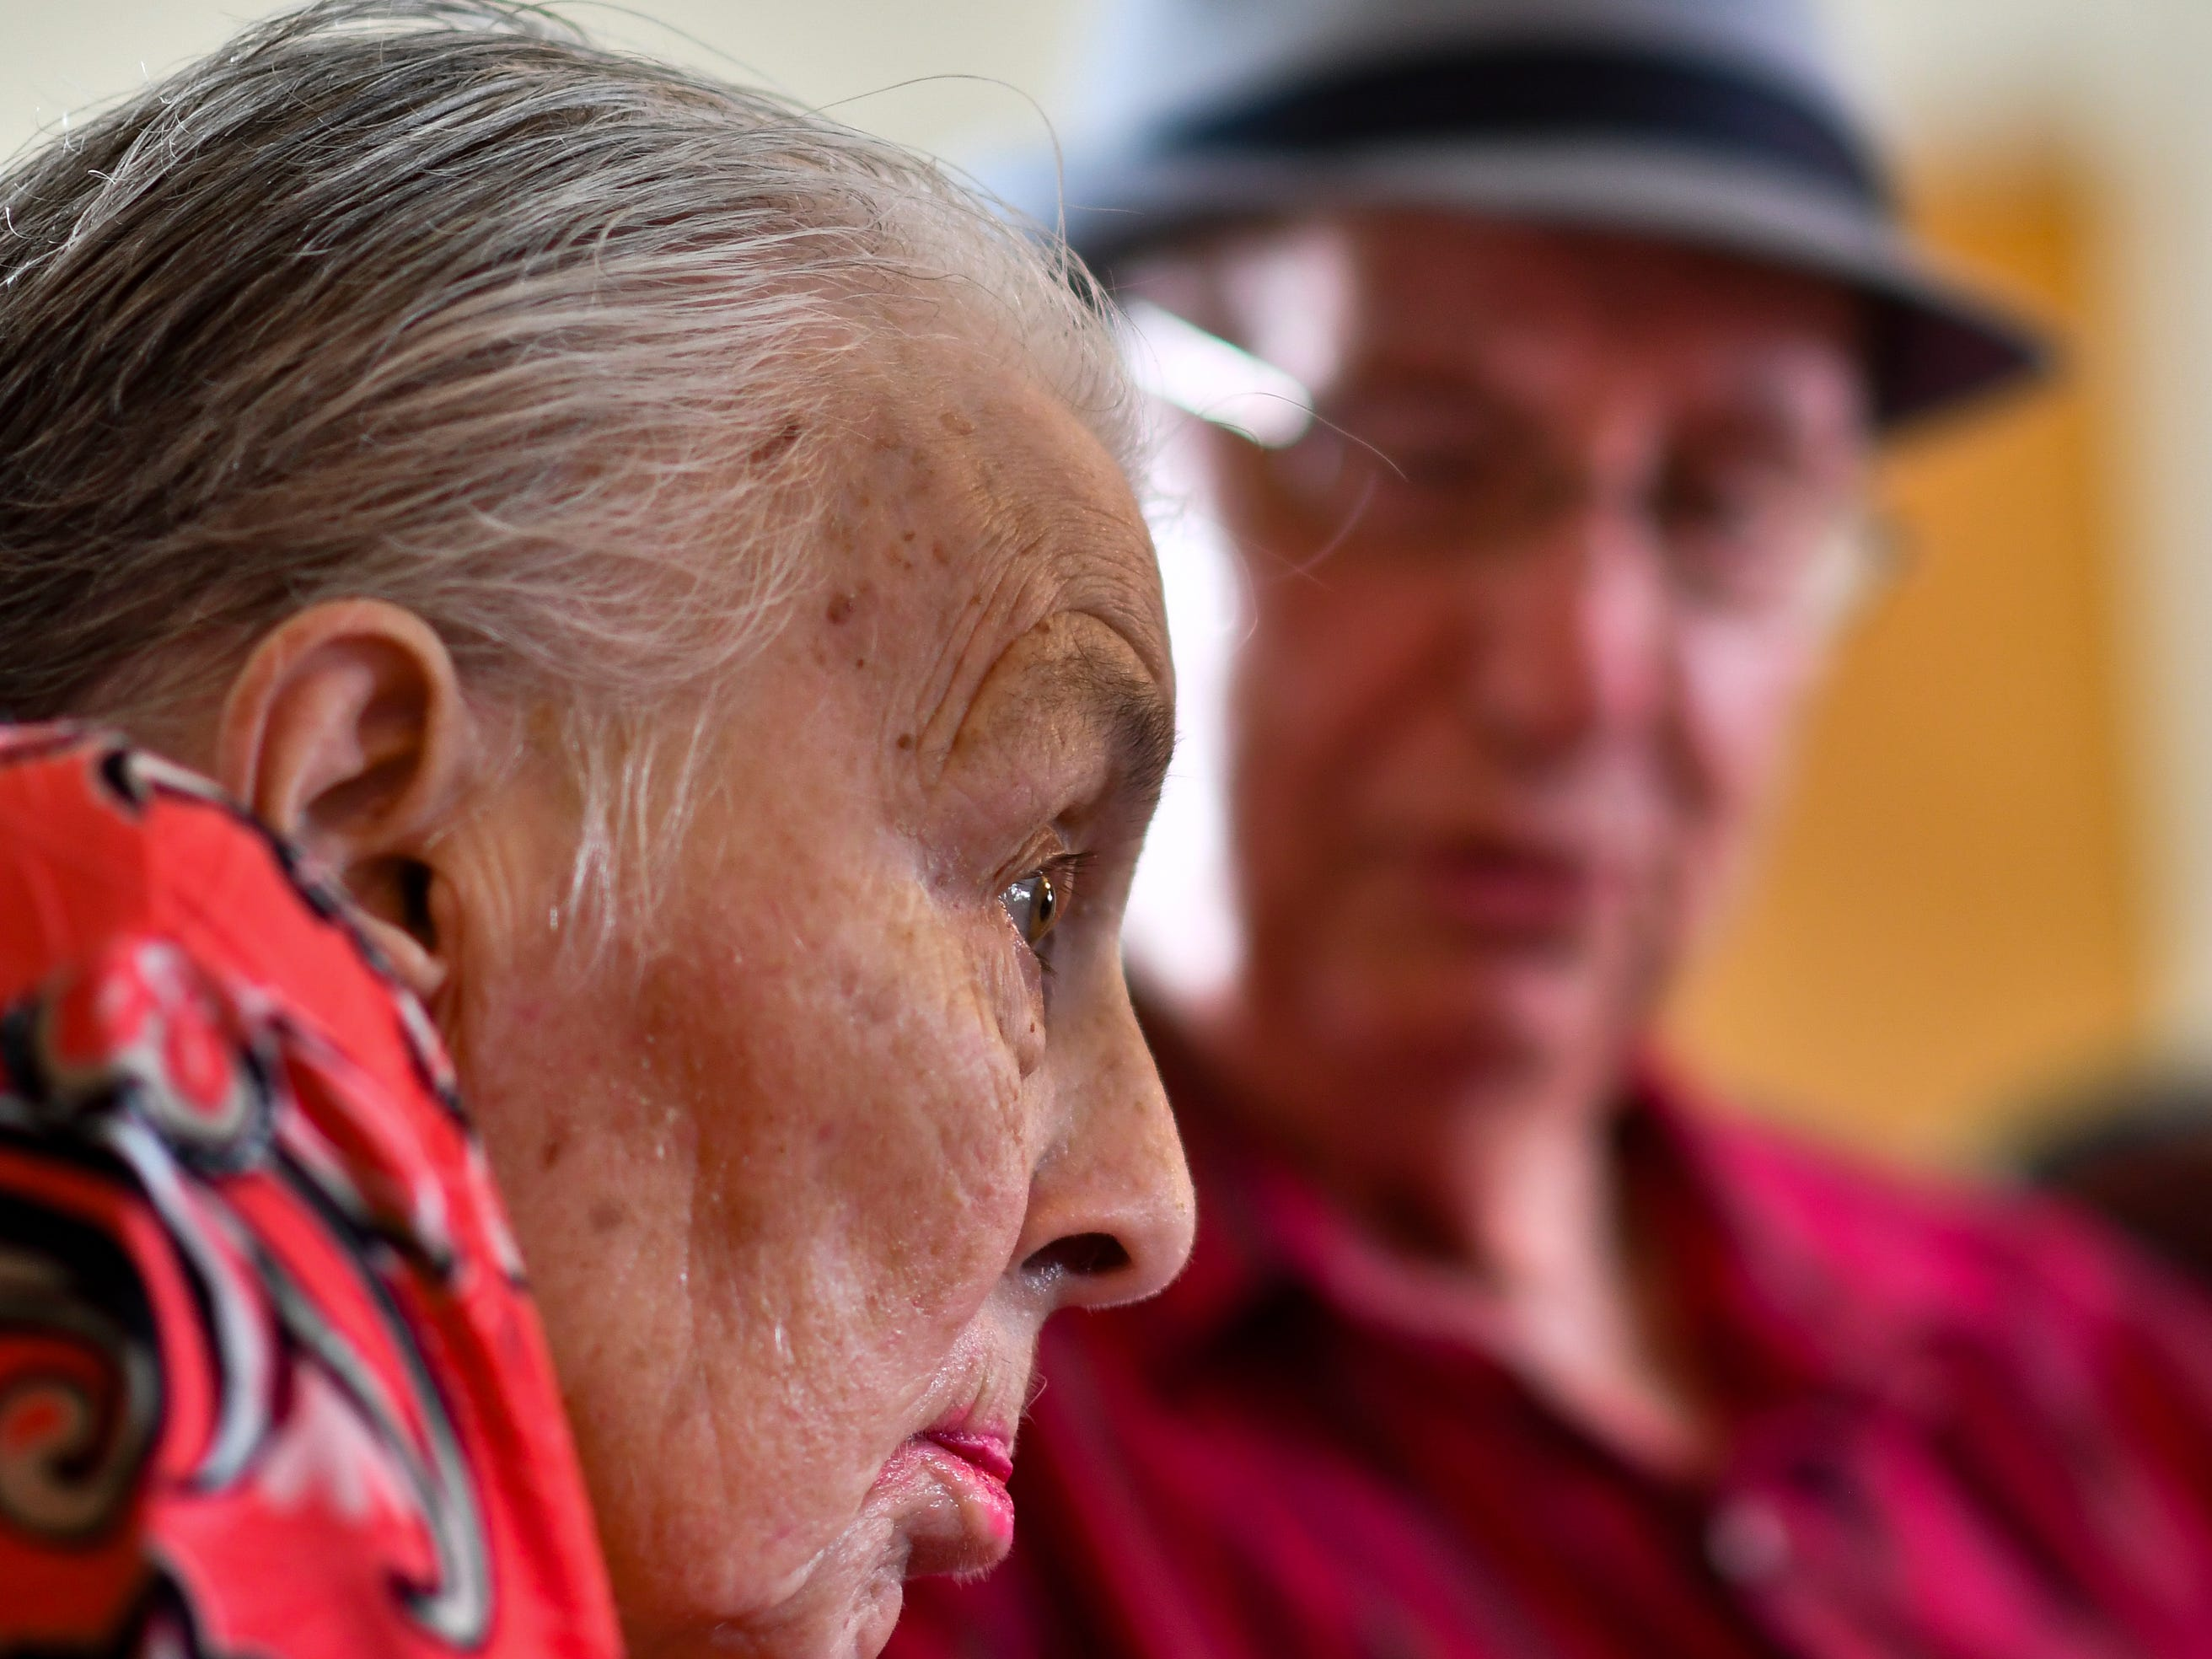 Jackie West, 86, of Eaton Rapids, listens as her husband Don, 90, sings to her, Tuesday, Aug. 21, 2018, at their anniversary party at the adult foster care home in Charlotte where she has lived since a stroke in June of 2017.